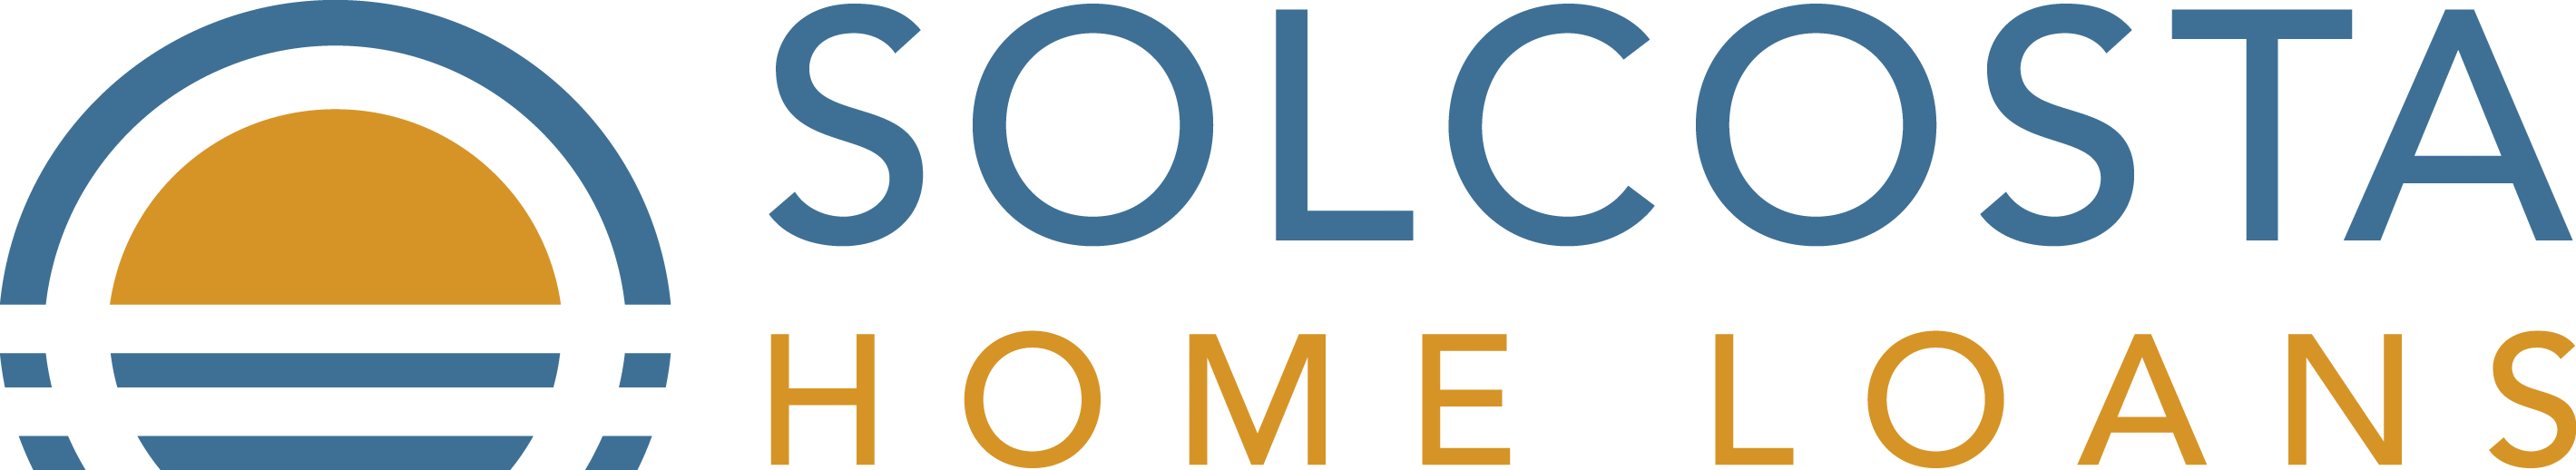 Solcosta Home Loans